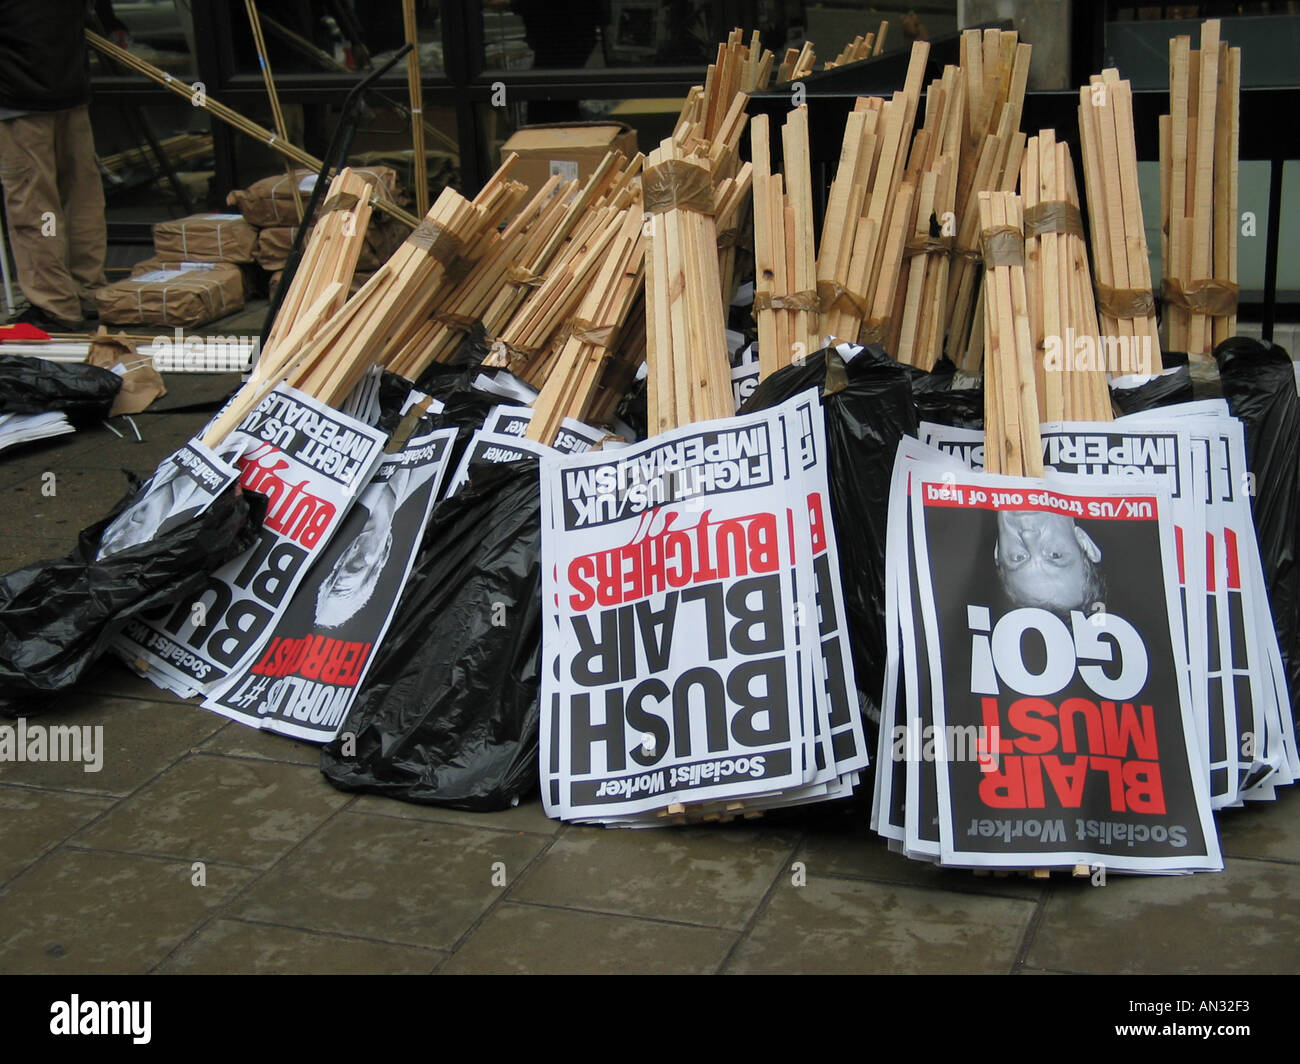 Placards - Stock Image